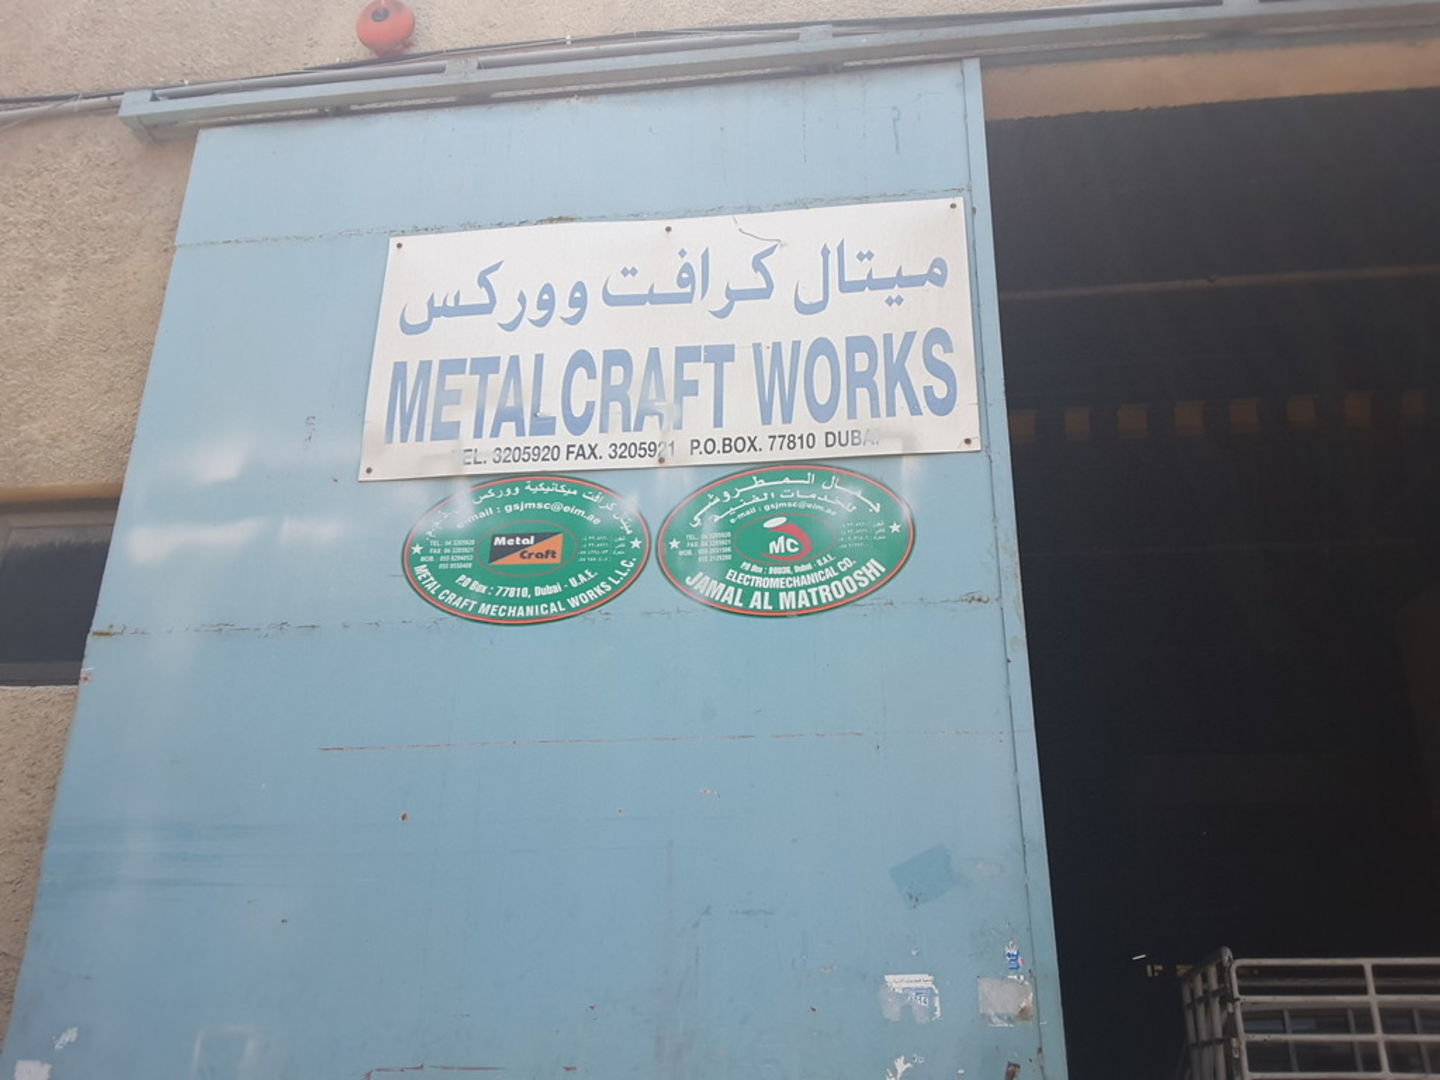 HiDubai-business-metalcraft-works-construction-heavy-industries-chemical-metal-companies-ras-al-khor-industrial-1-dubai-2